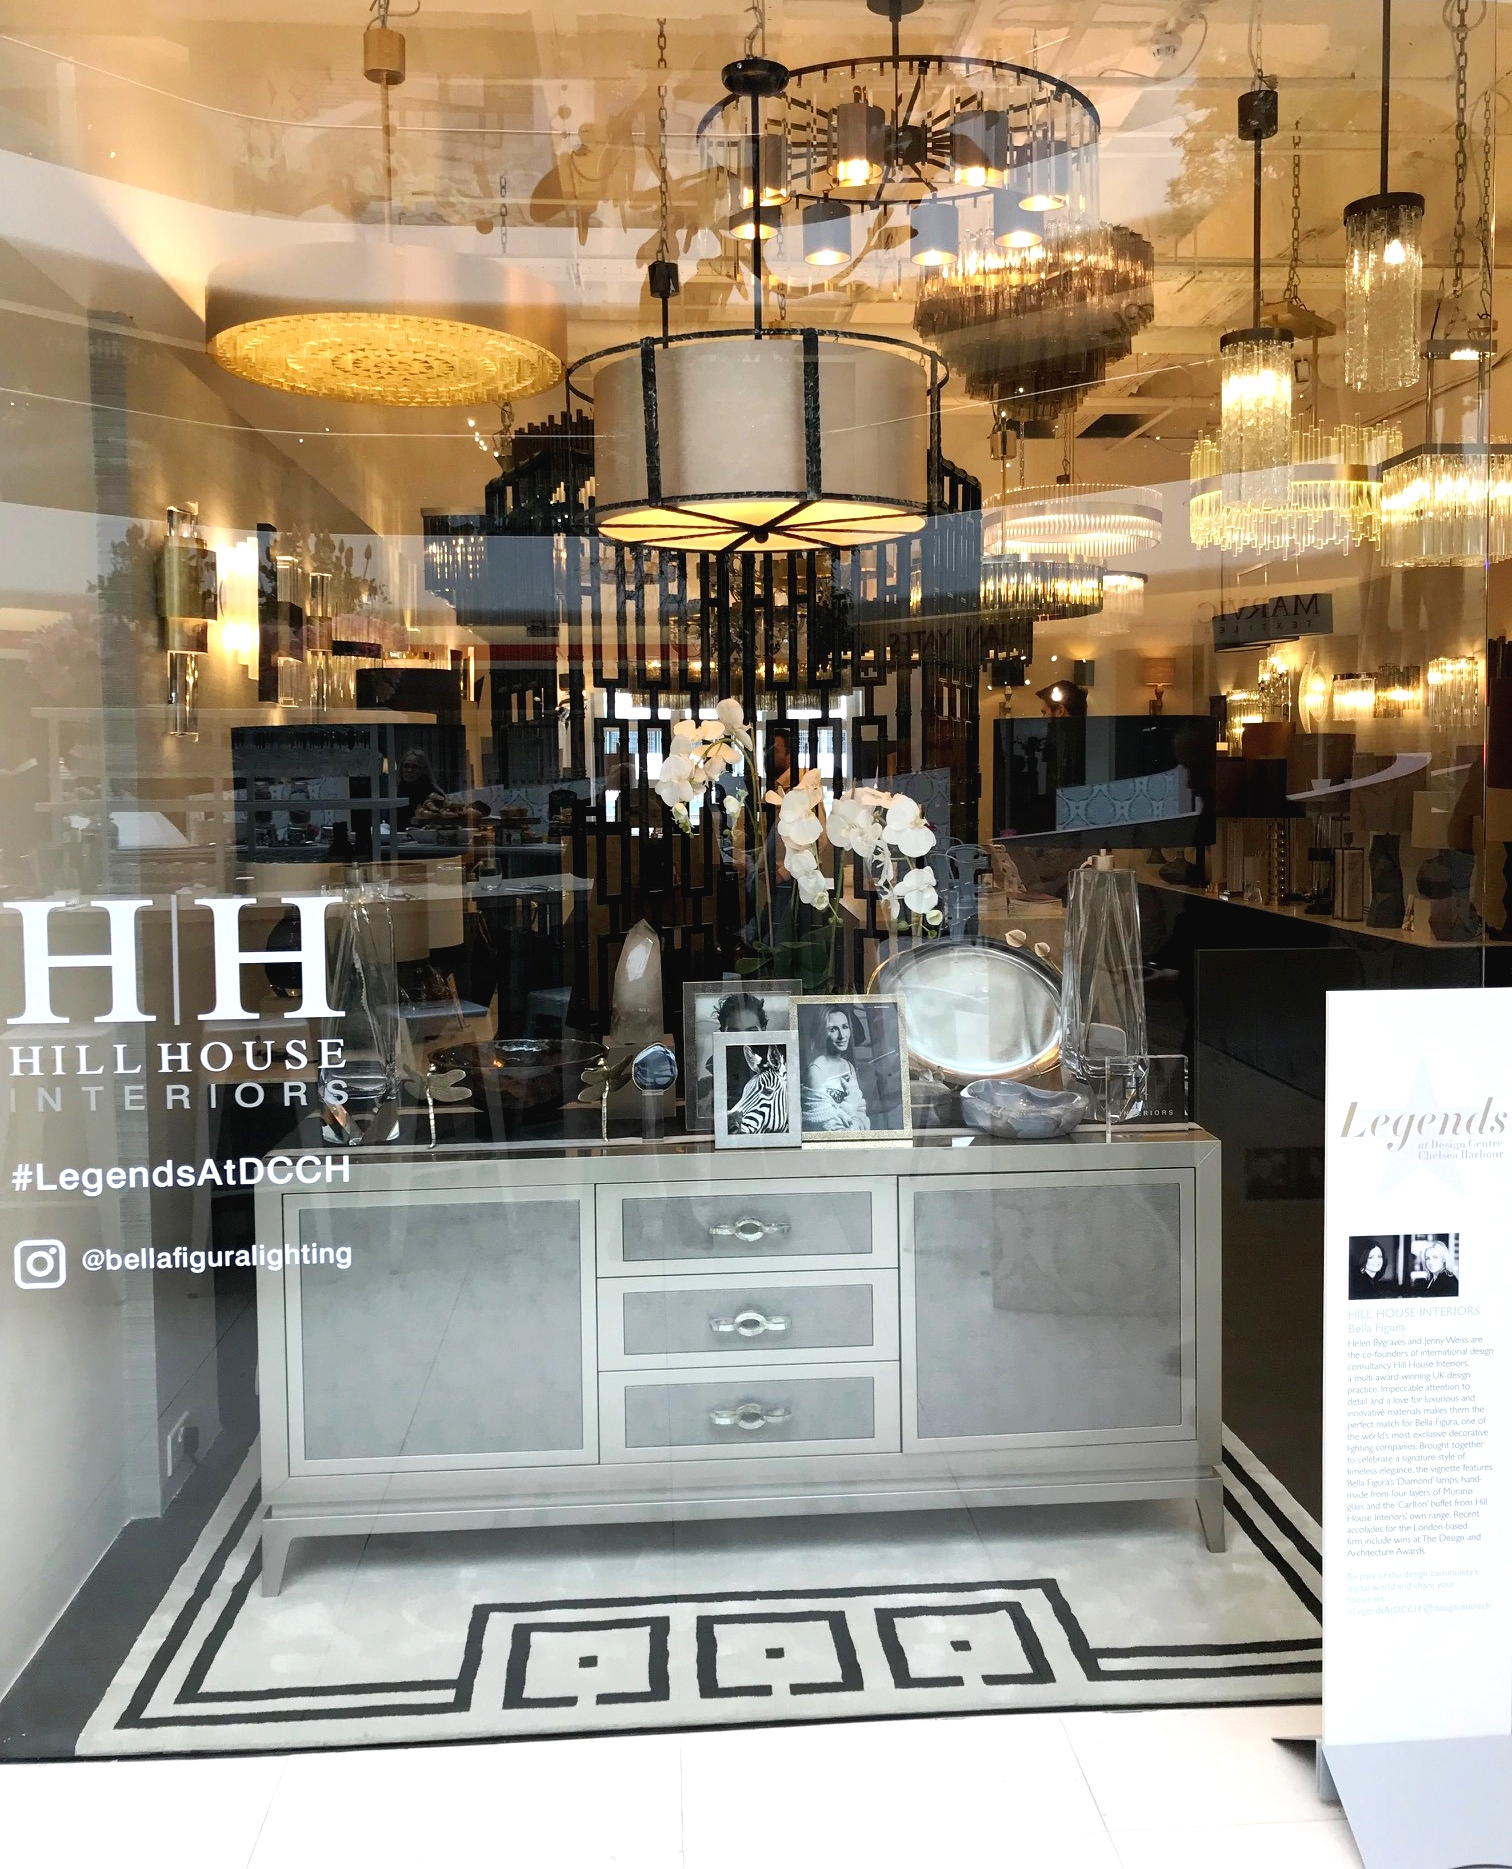 For More Information On Hill House Interiors Visit  Www.hillhouseinteriors.com